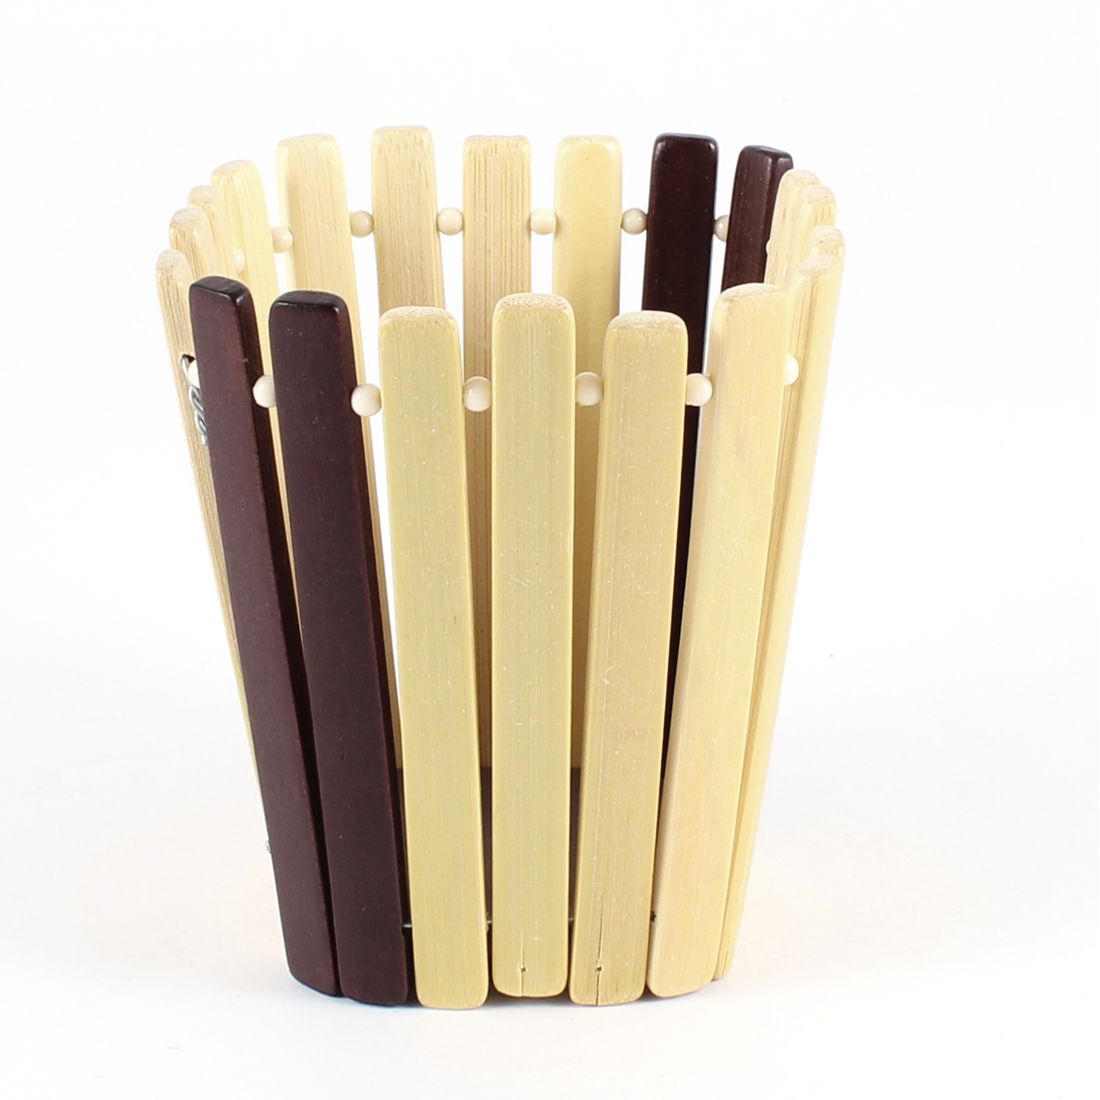 Home Plastic Beads Decor Stationery Organizer Bamboo Pen Holder Brown Beige